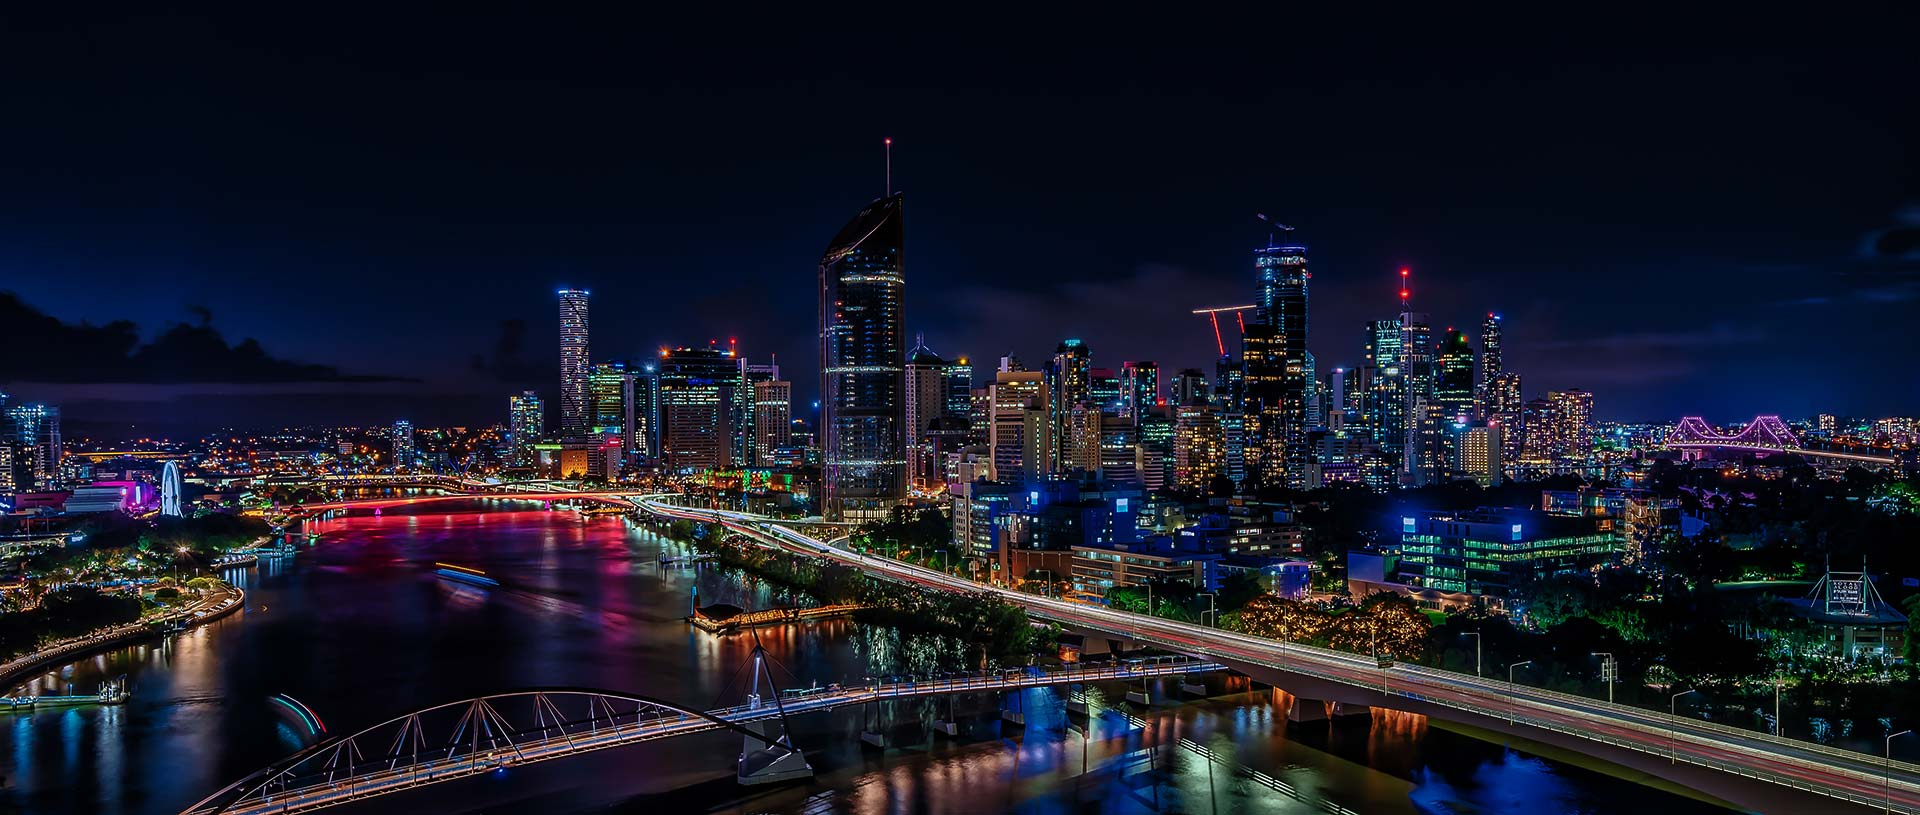 Brisbane city illuminated at night